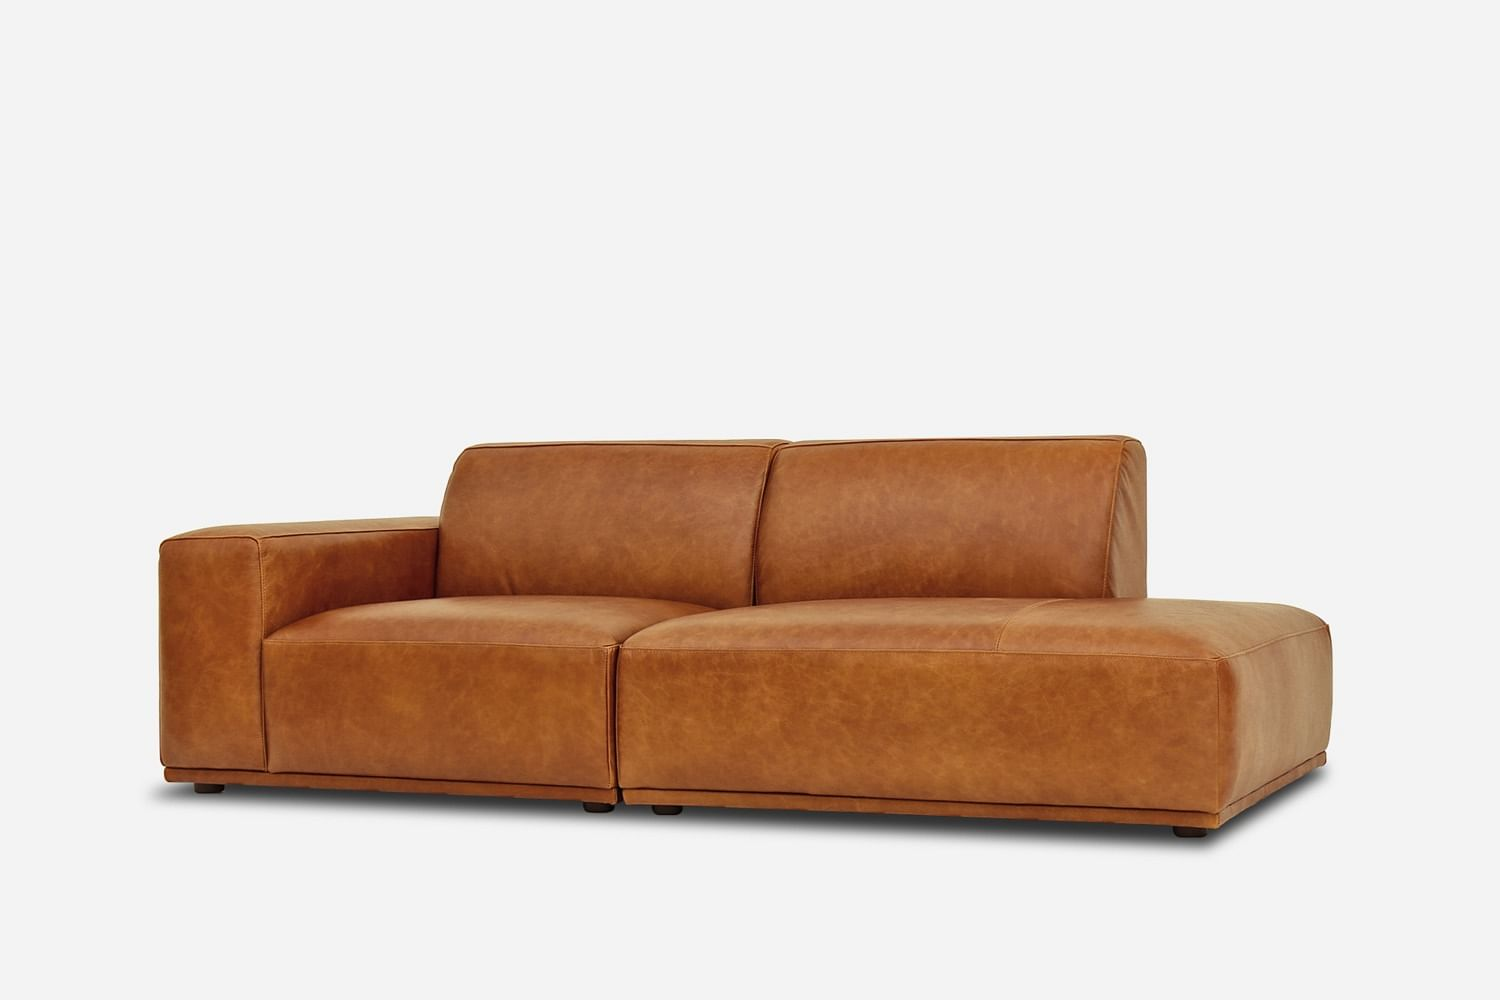 dulux spiced honey with brown leather, castlery singapore